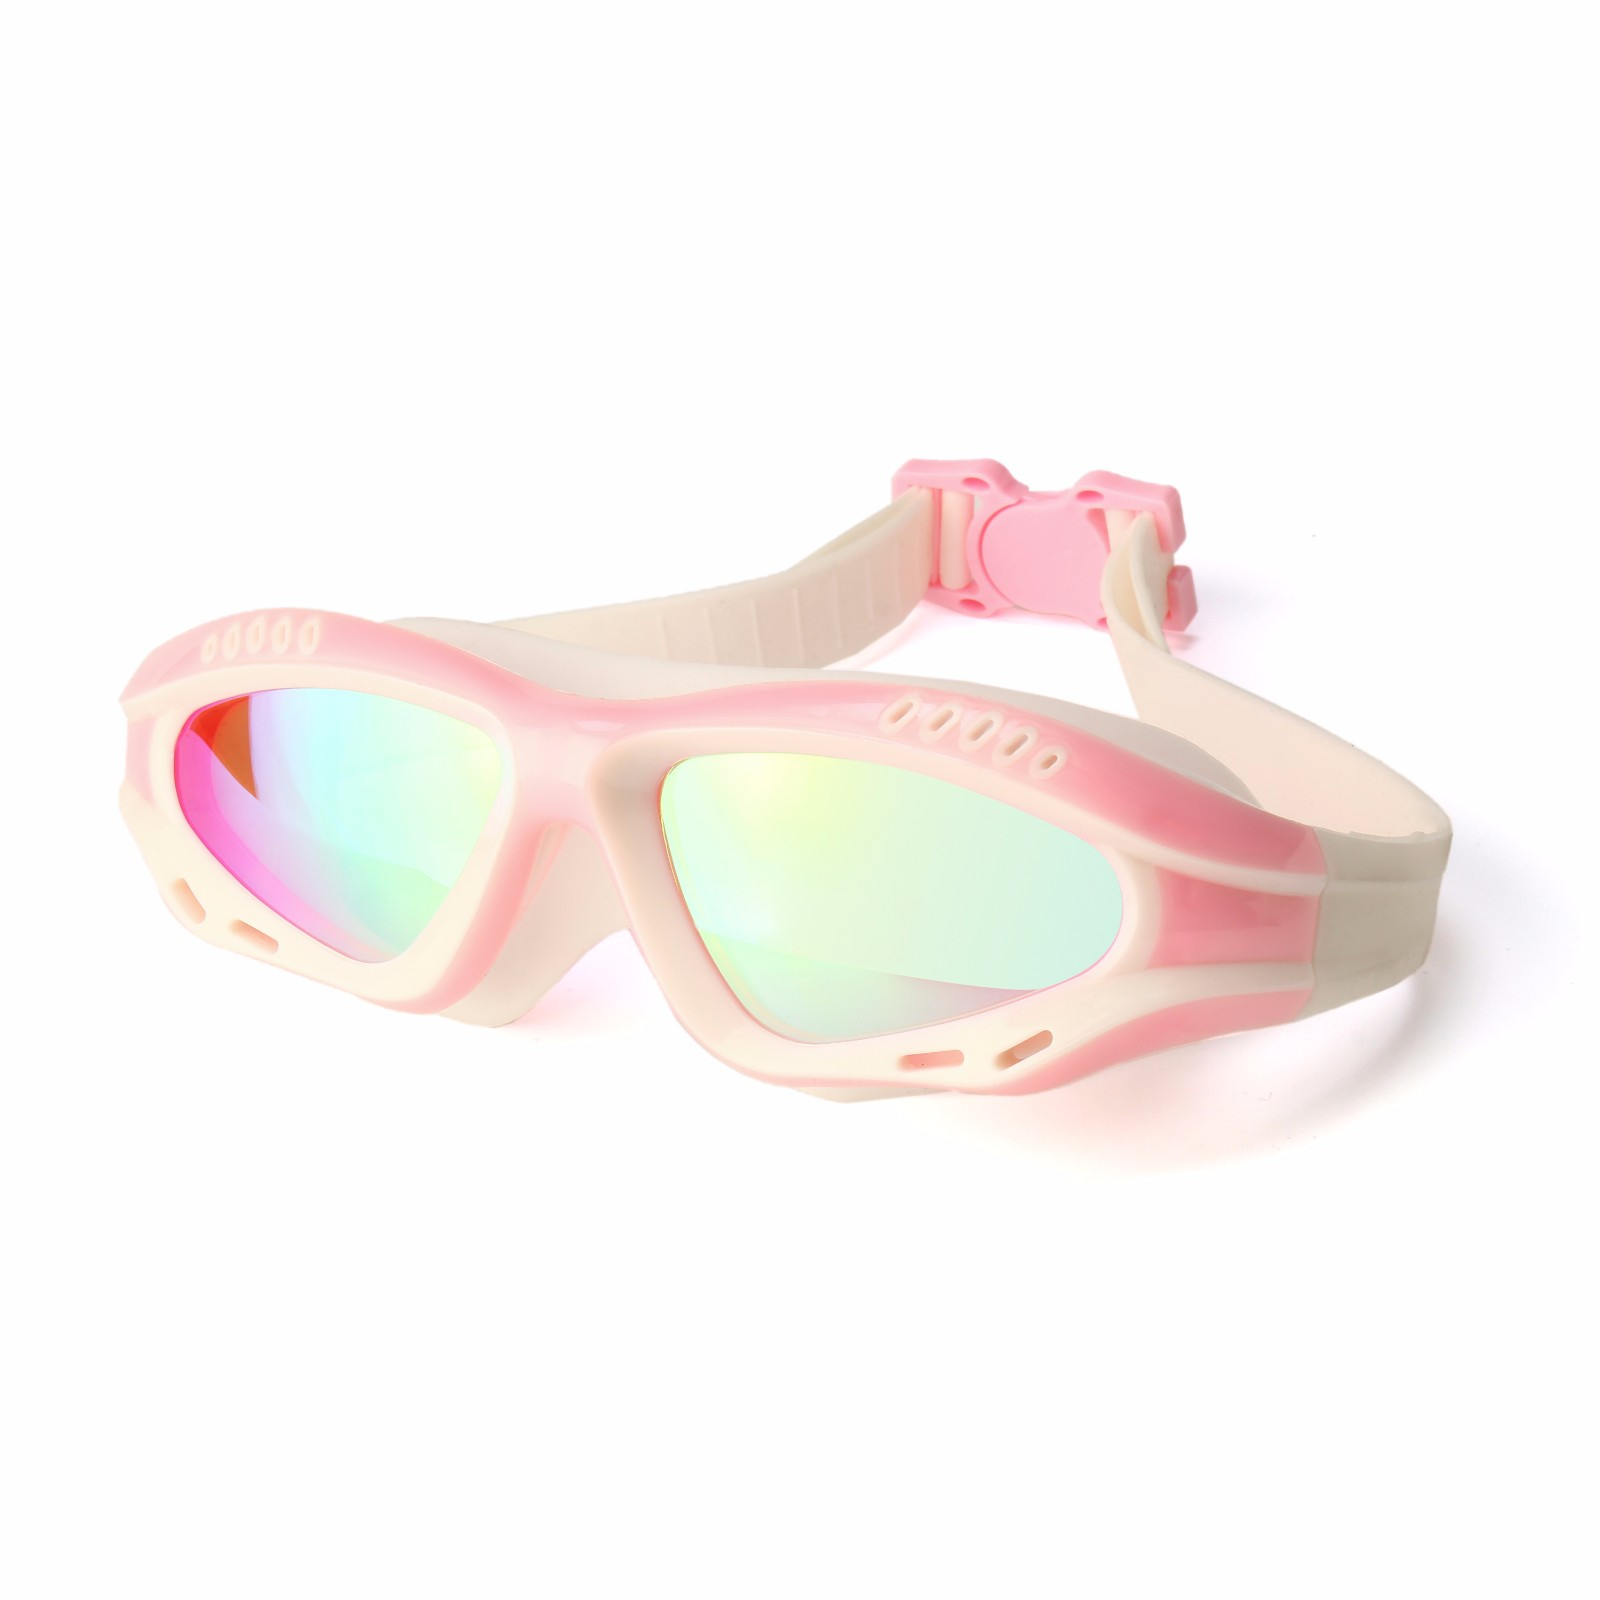 Swimming goggles Manufacturers, Swimming goggles Factory, Supply Swimming goggles